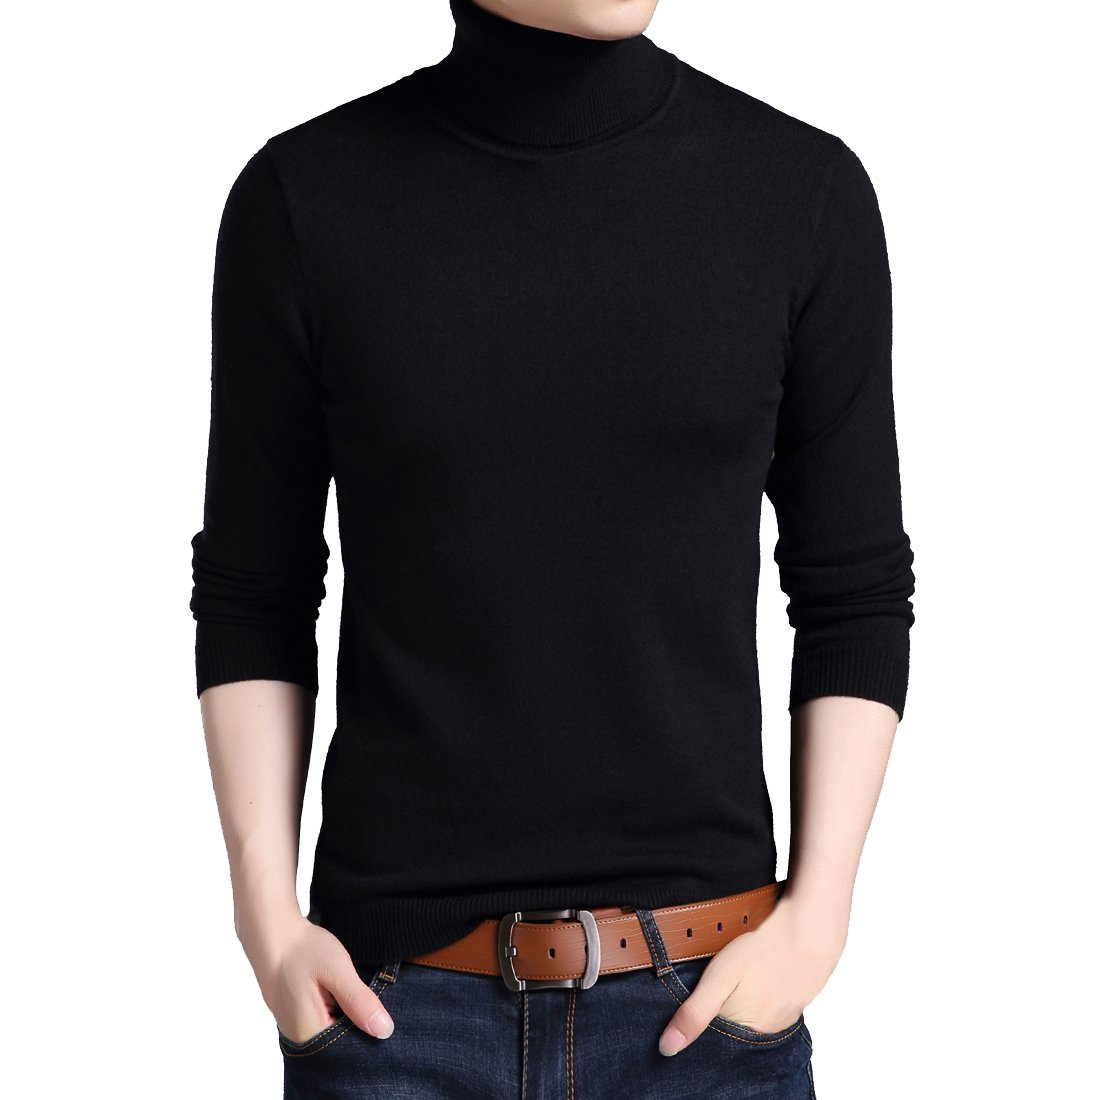 Wonder Fashion Mens Fall Wool Cashmere Knitted Sweater Long Sleeve Turtleneck Pullover Tops for Boys